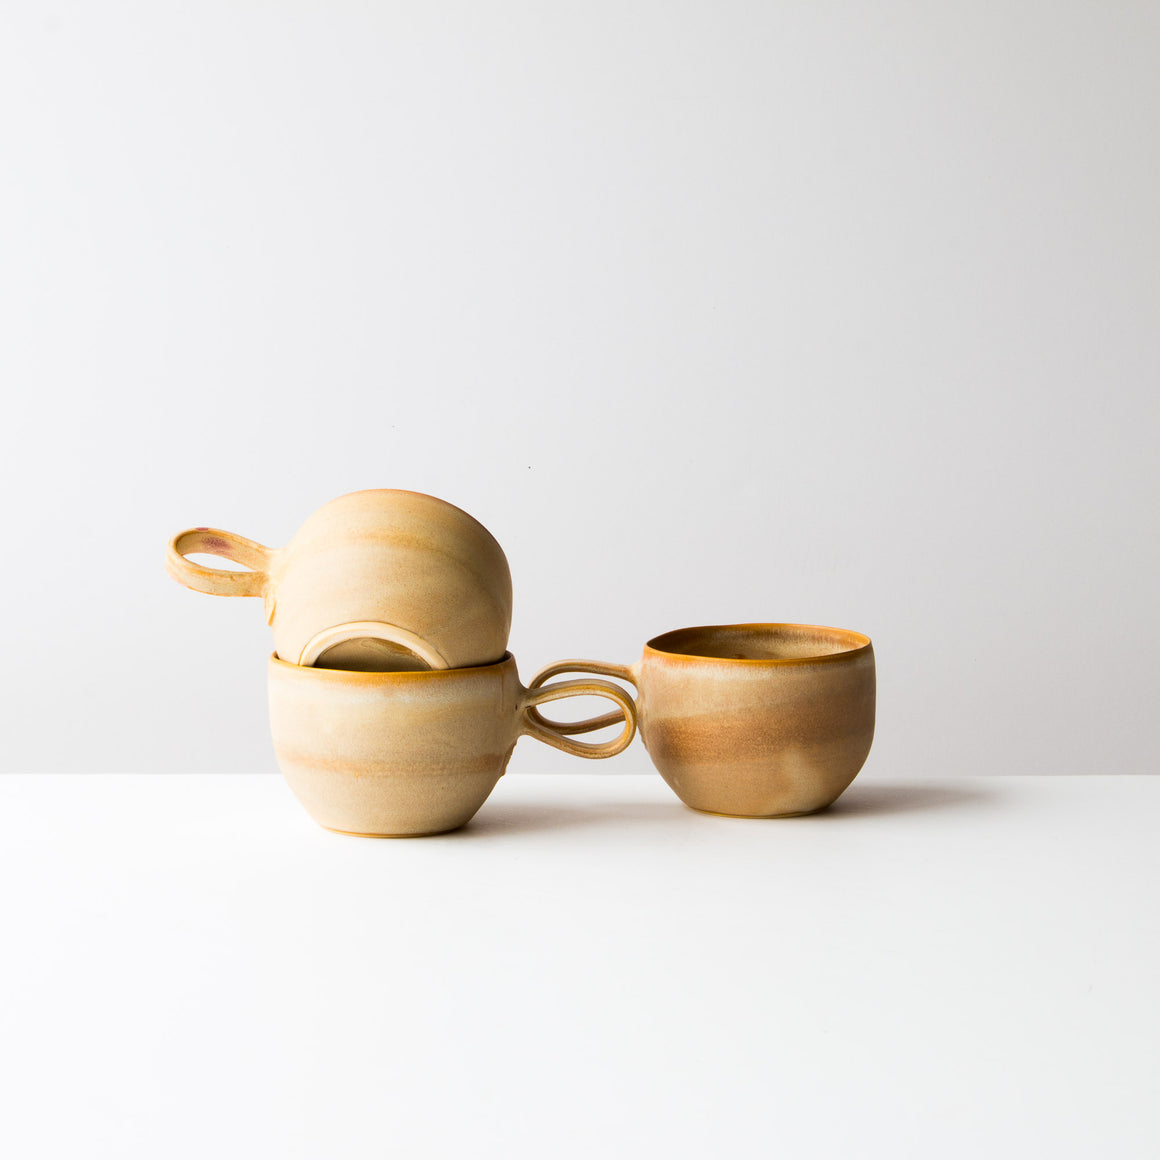 Three Handmade Ceramic Cups in Stoneware - Sold by Chic & Basta